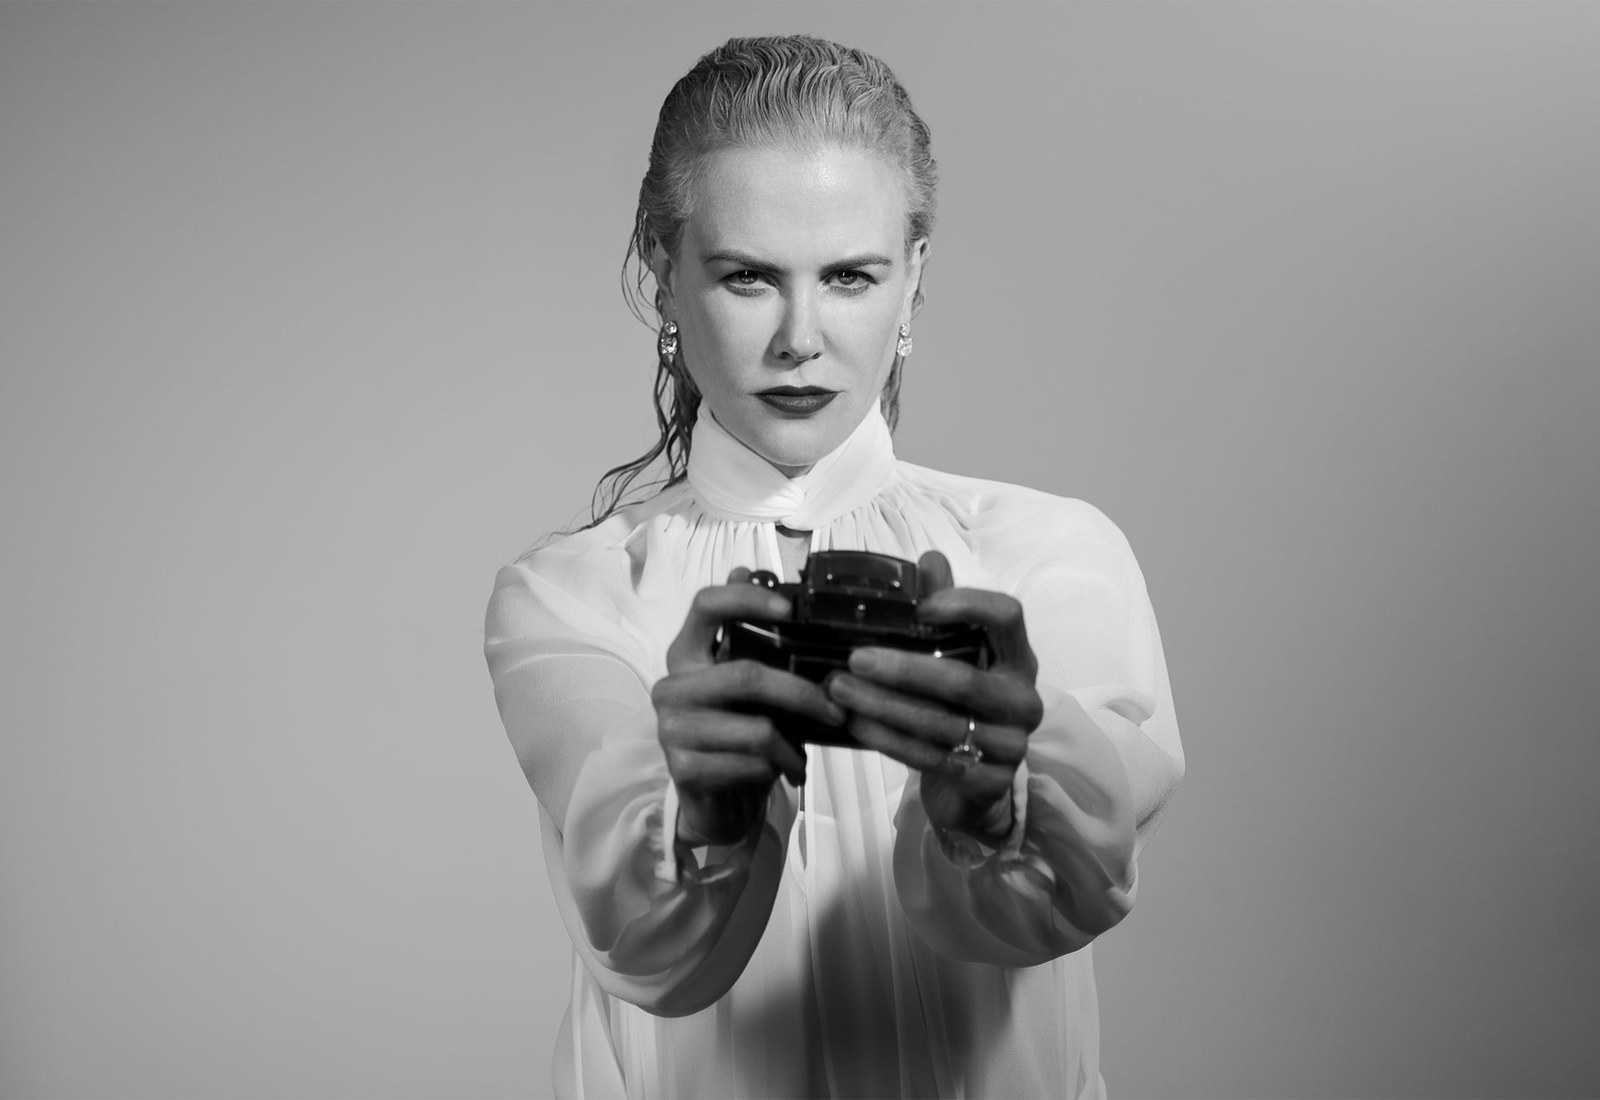 Nicole Kidman by Collier Schorr for Vanity Fair May 2019.